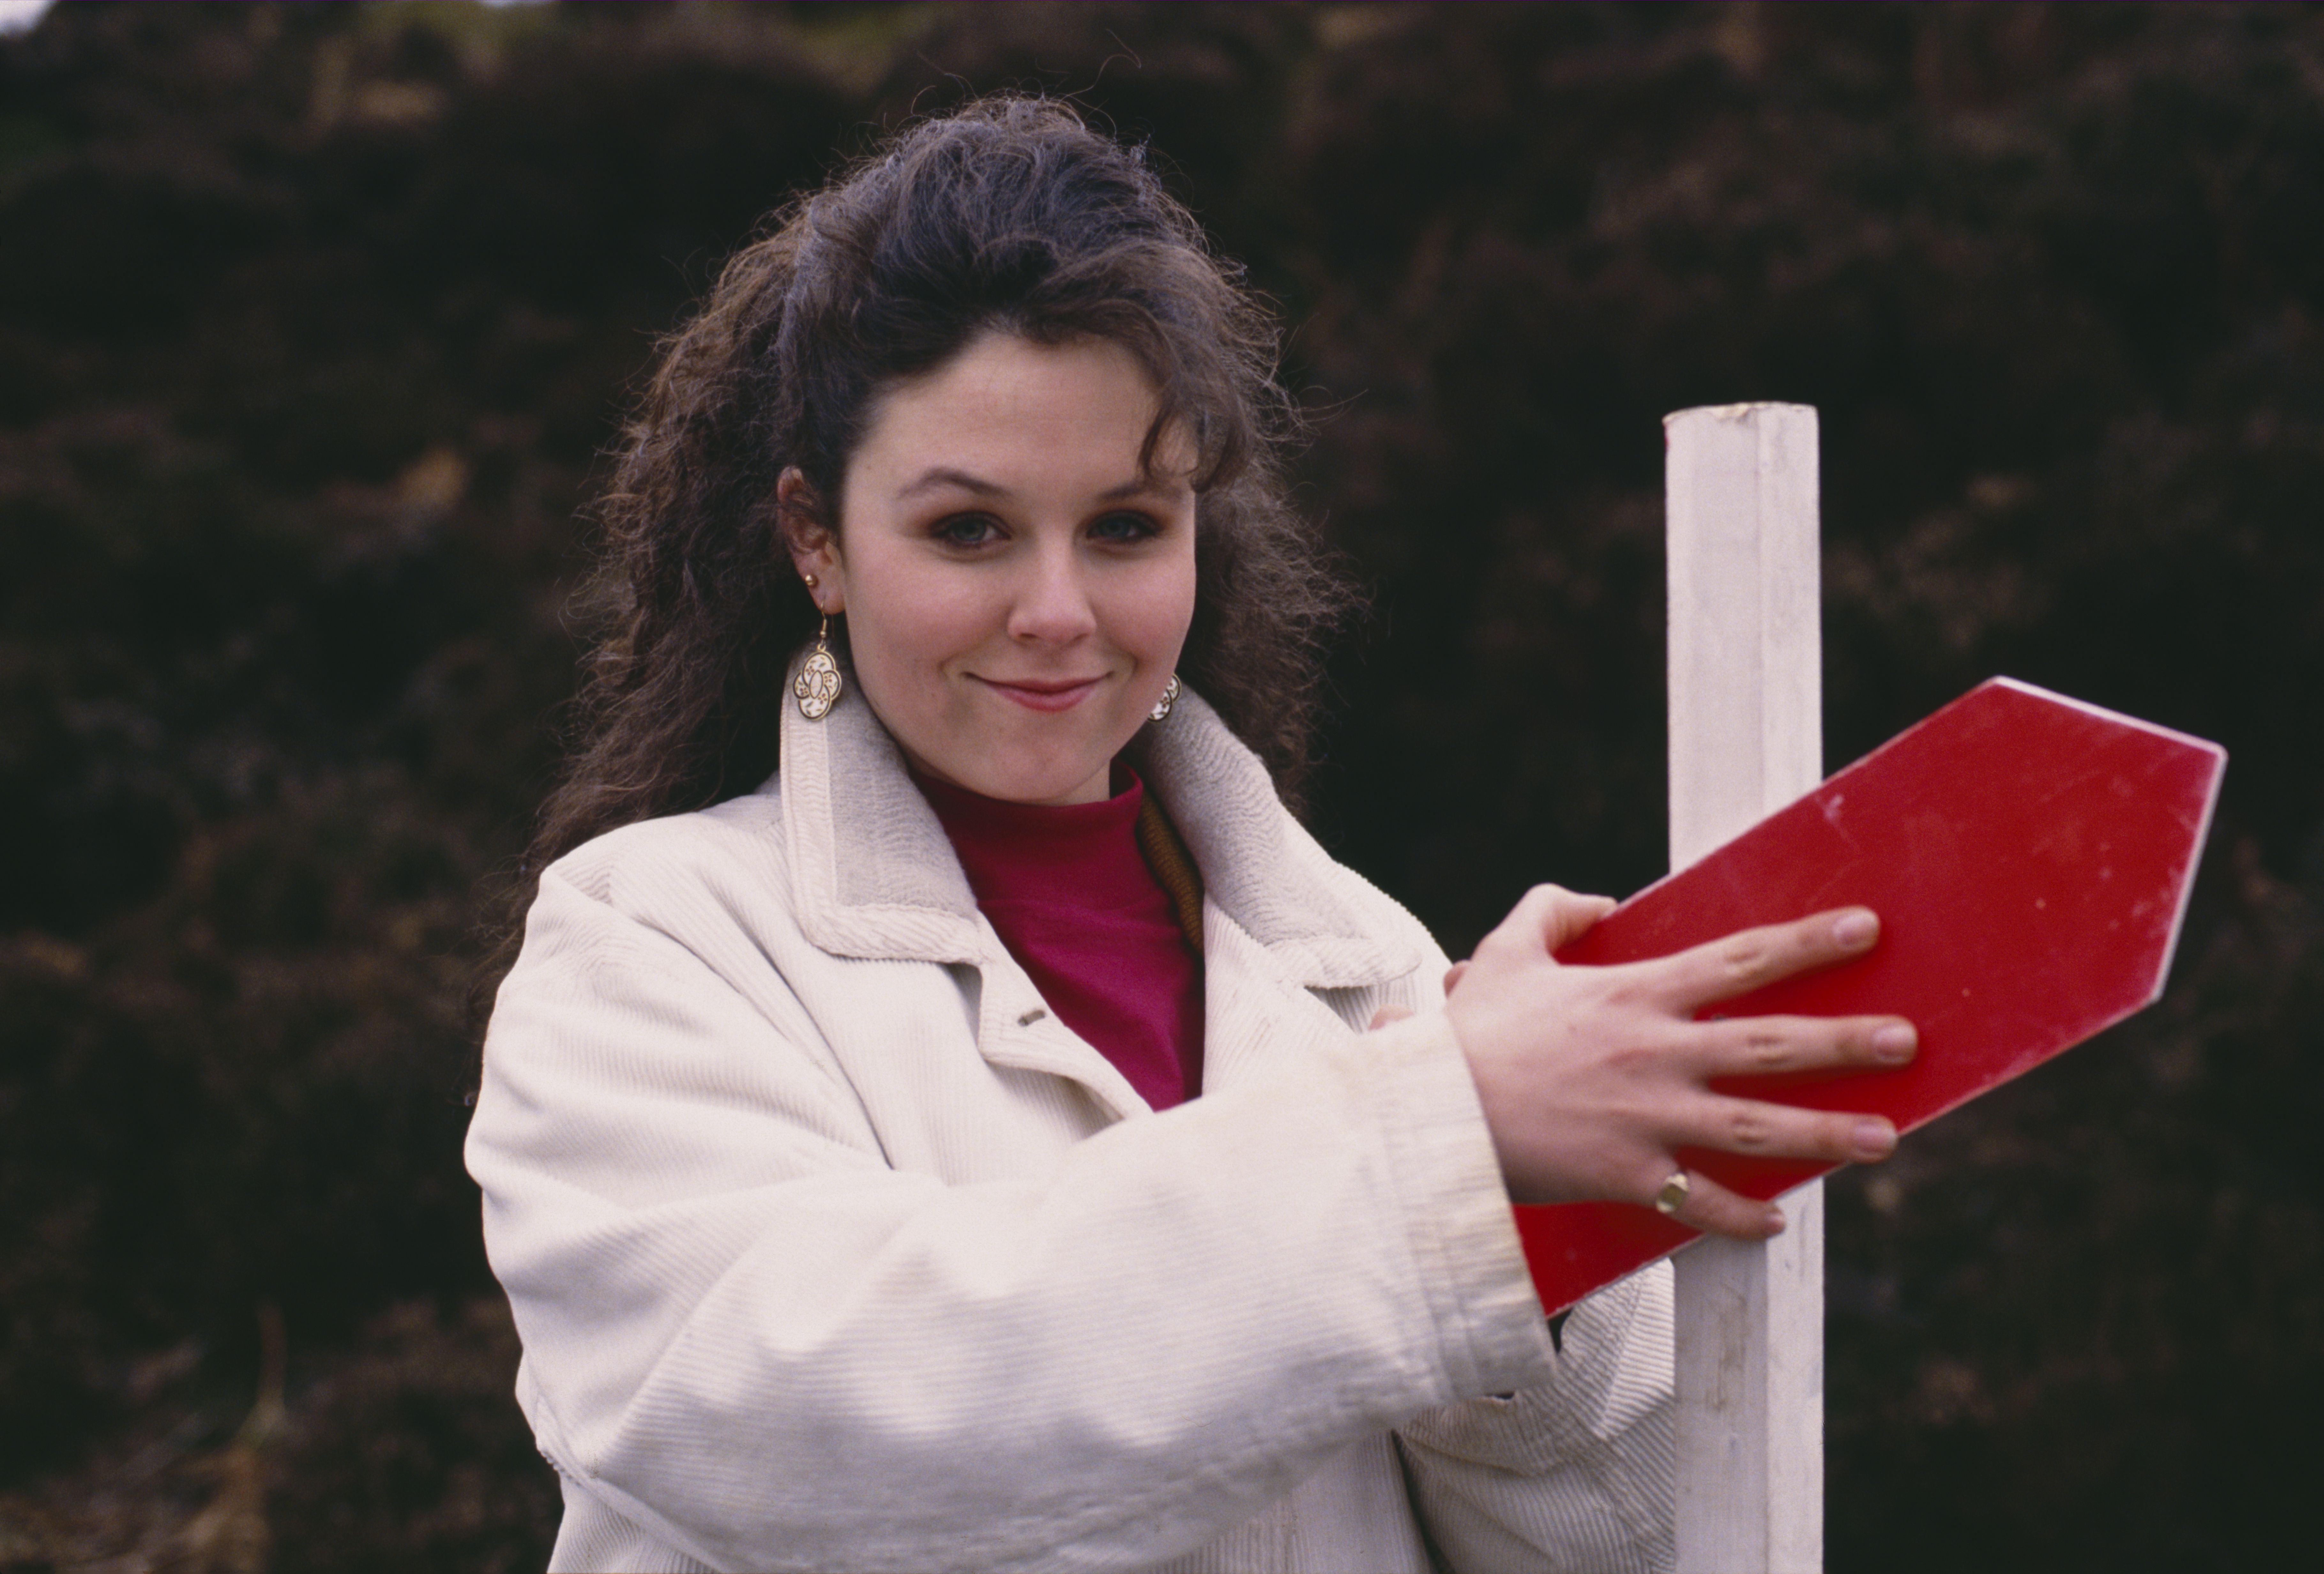 Editorial use only Mandatory Credit: Photo by ITV/Shutterstock (8081371f) Nicola Strong (as Lorraine Nelson) on a fell run (Ep 1755 - 13th April 1993) 'Emmerdale' TV Series - 13 Apr 1993 Emmerdale Farm is a long-running British soap opera set in Emmerdale, a fictional village in the Yorkshire Dales. Created by Kevin Laffan, it first broadcast on 16 October 1972 and produced by ITV Yorkshire.